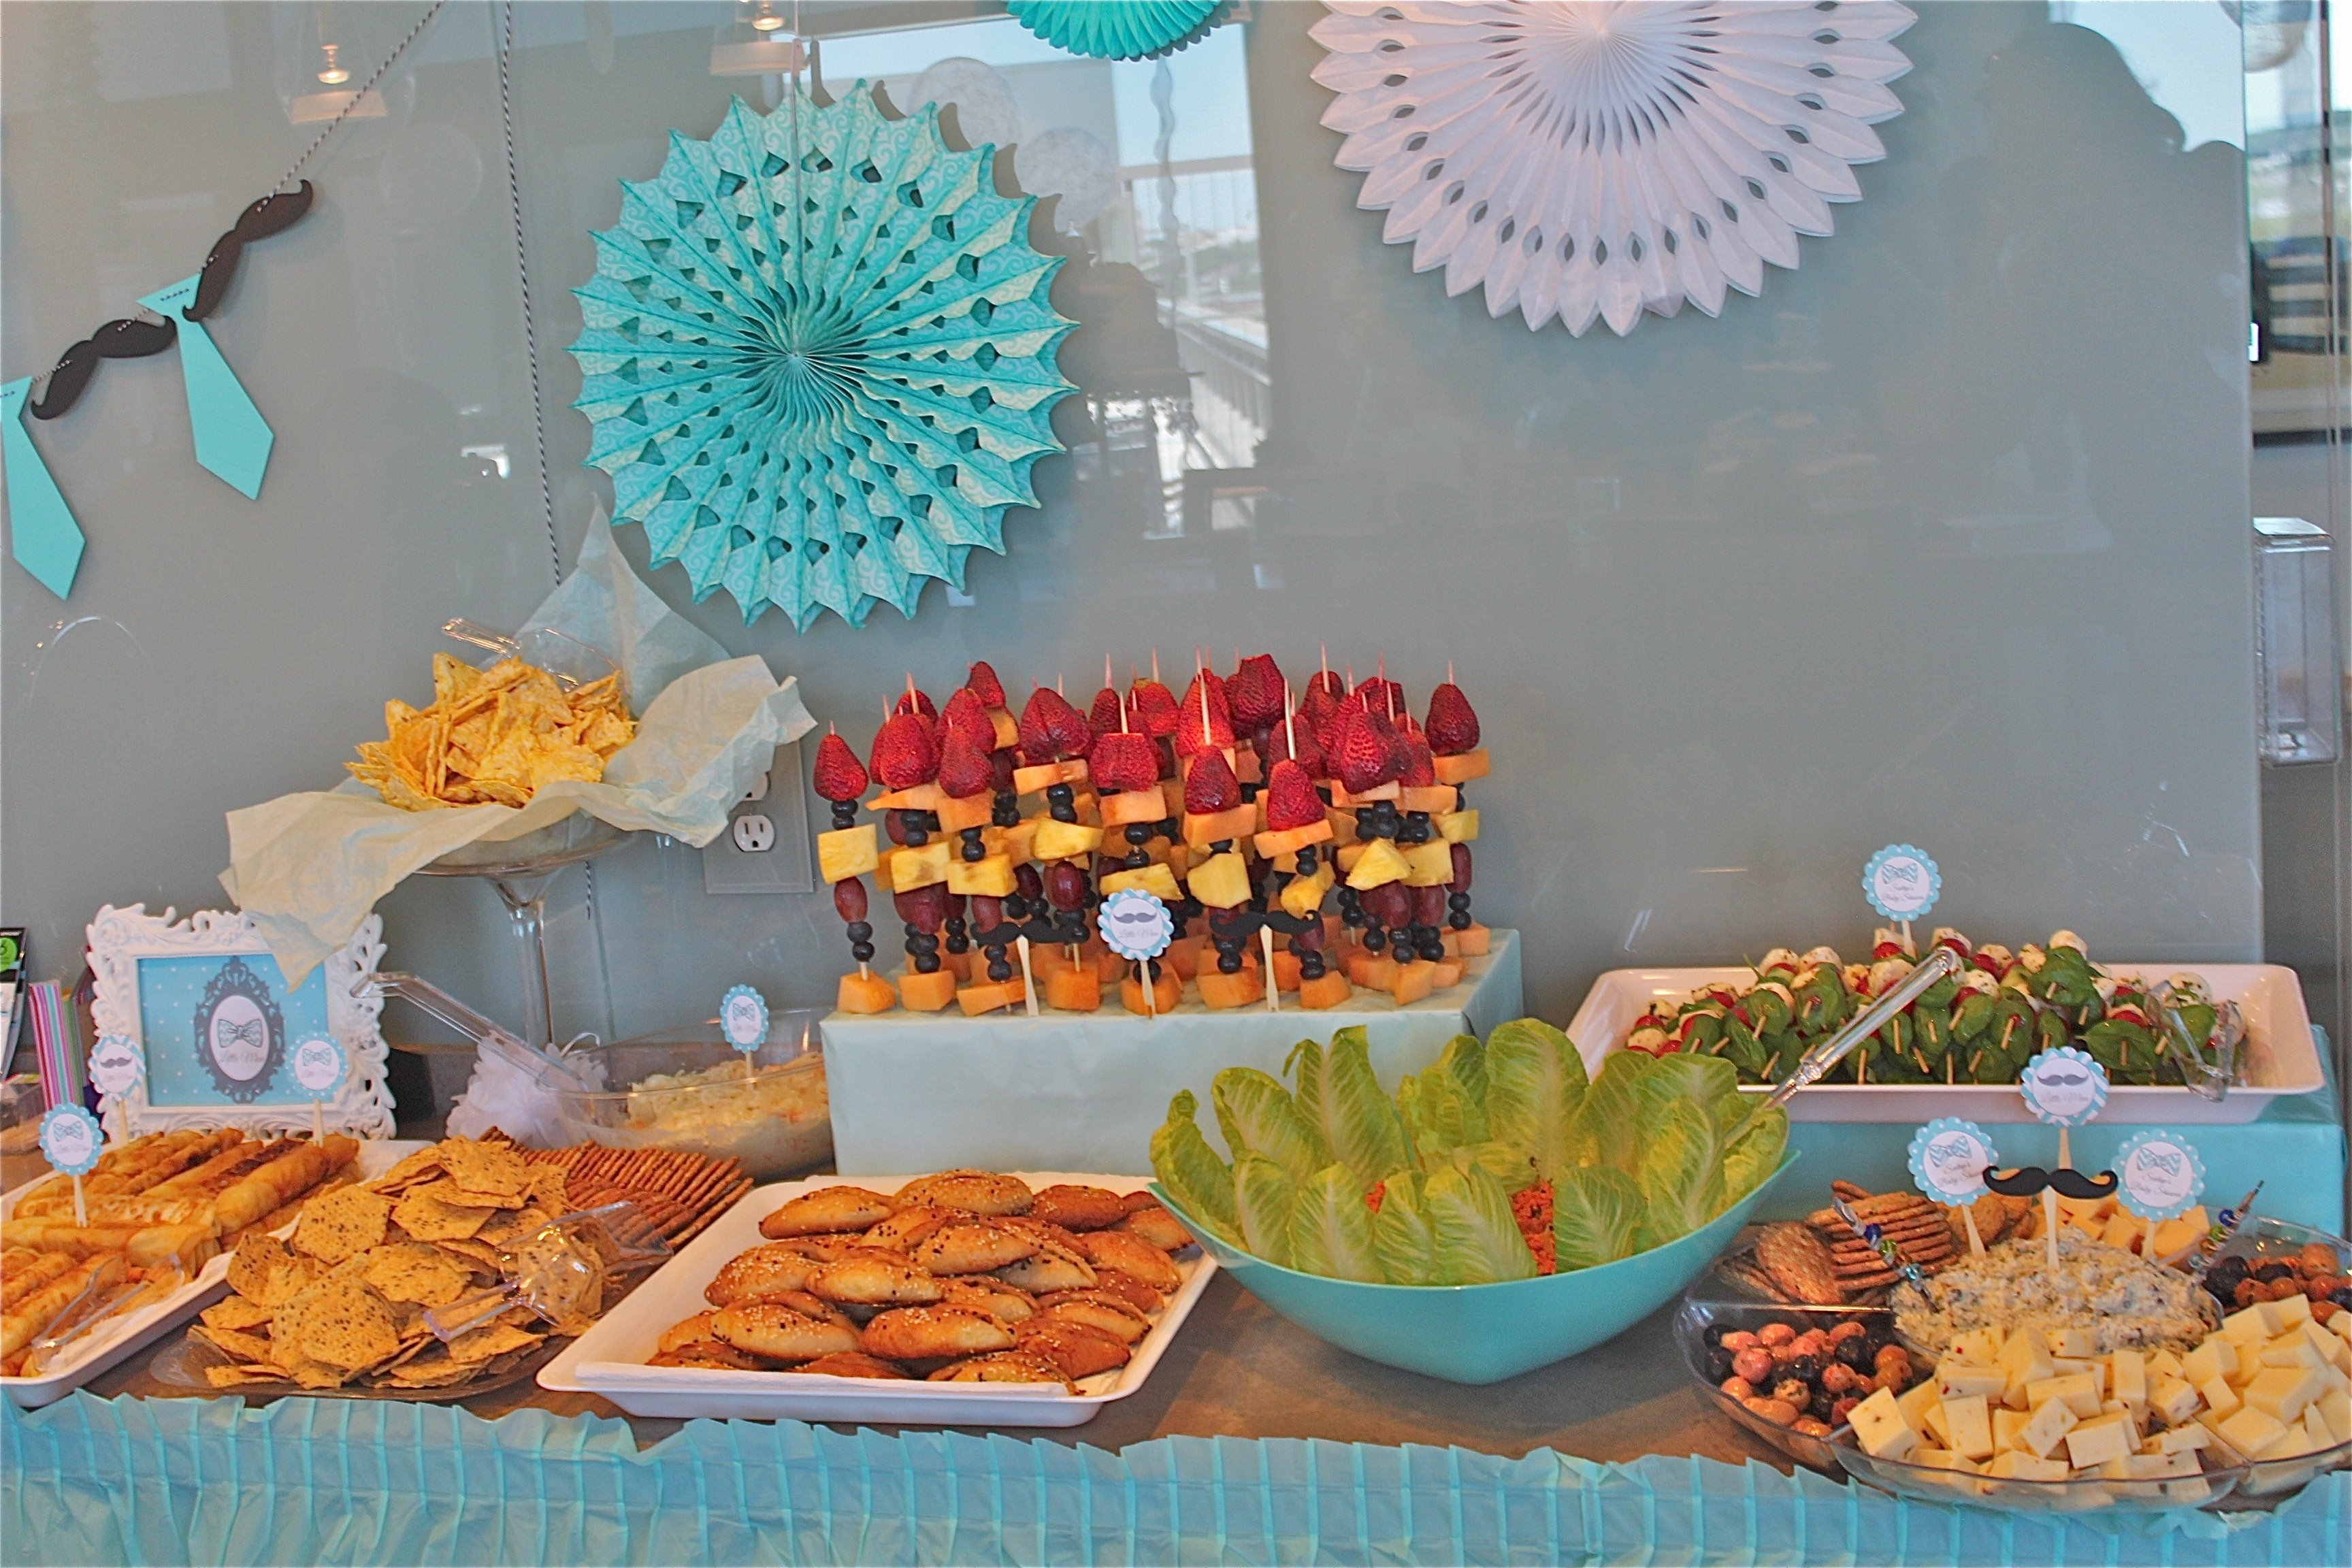 10 Unique Baby Shower Food Ideas For A Girl baby shower food ideas for a boy omega center ideas for baby 1 2020